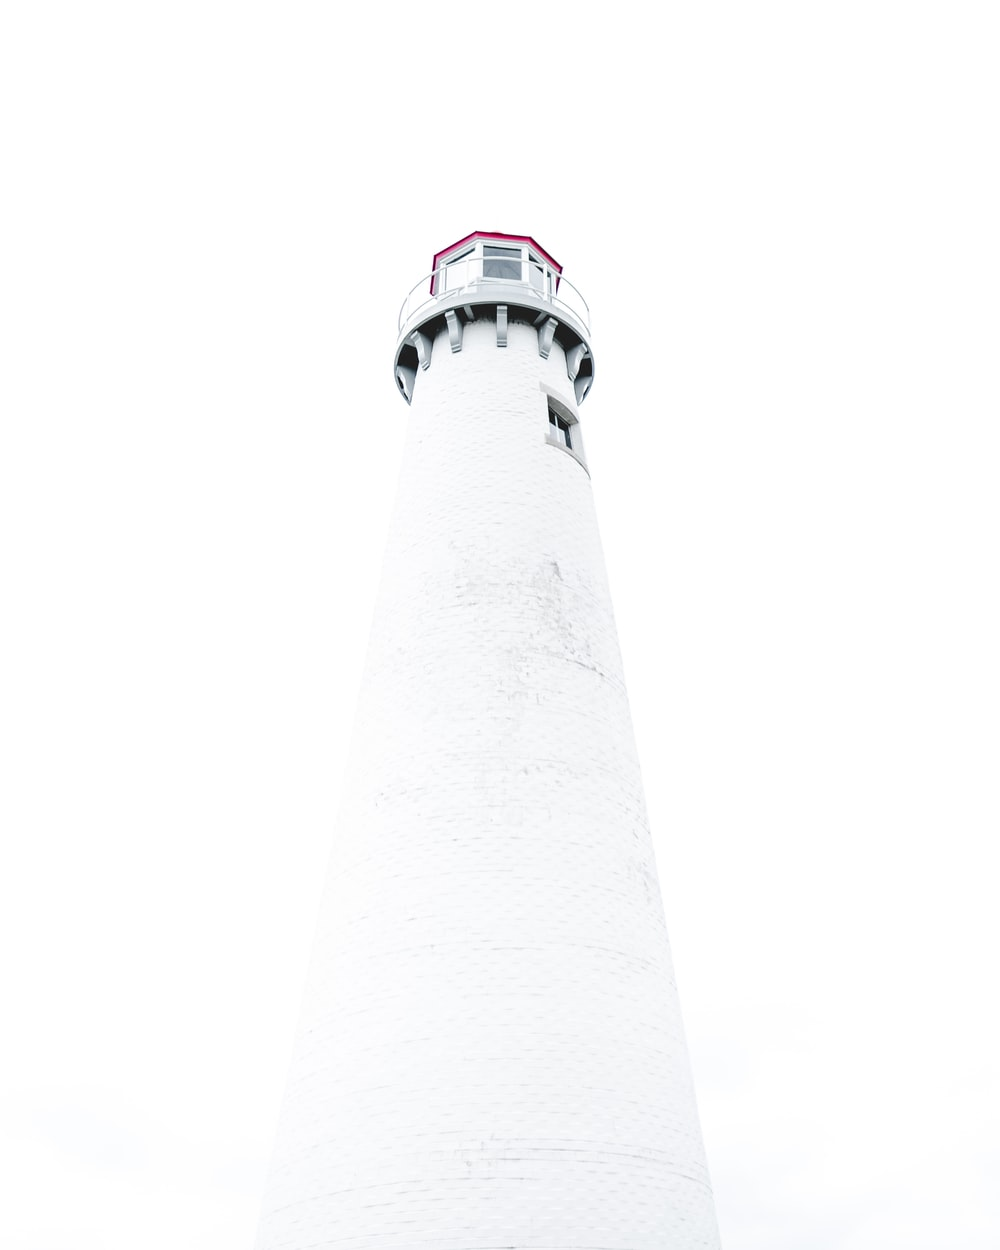 low-angle photography of white light house